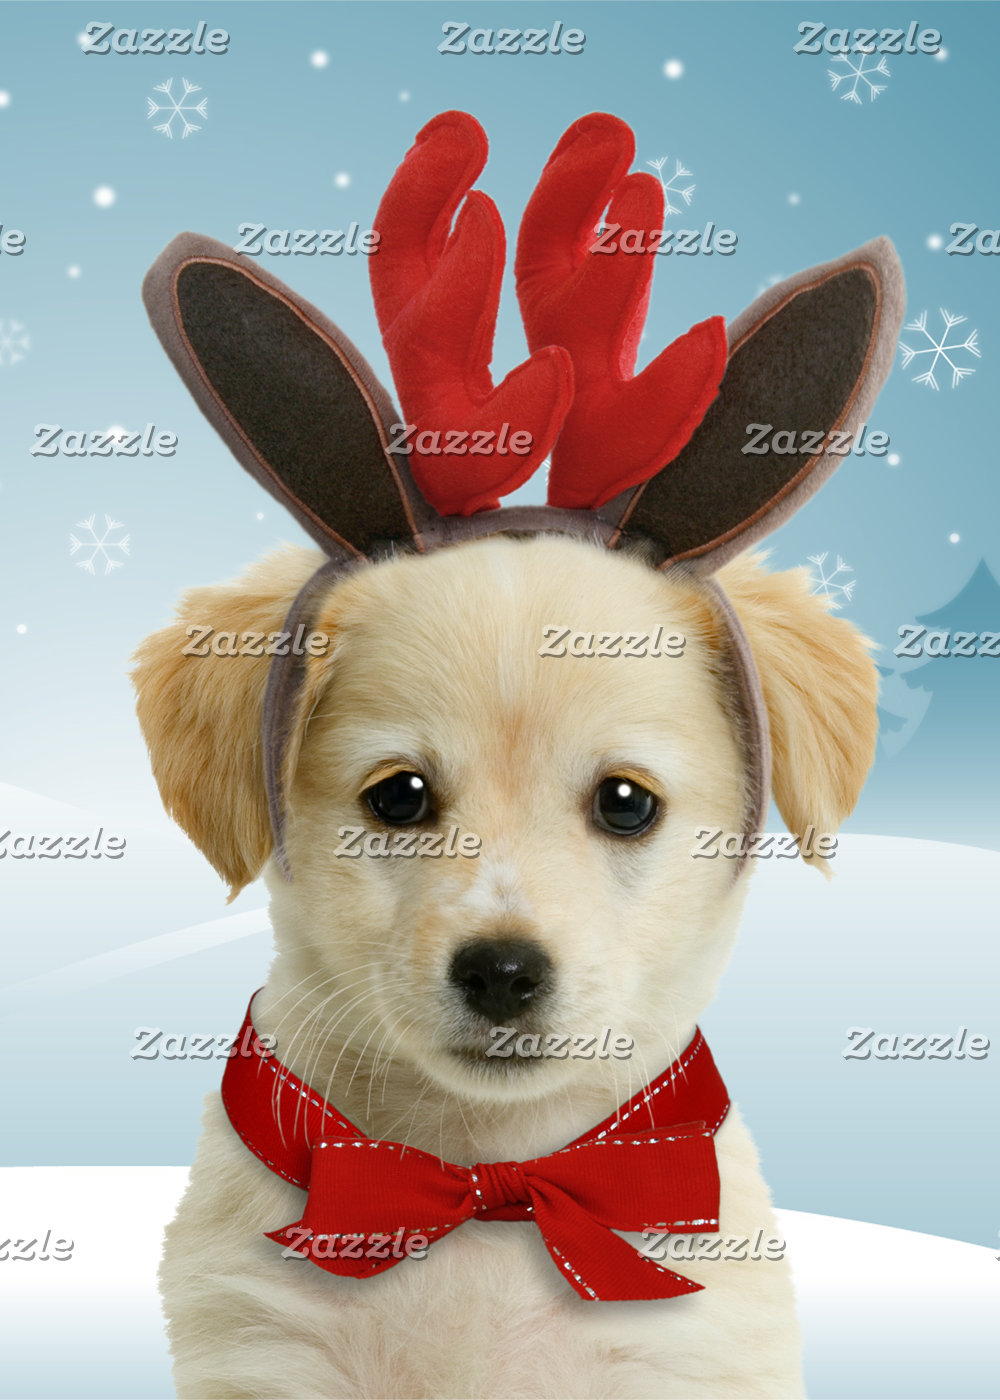 Reindeer Puppy Cards and Gifts